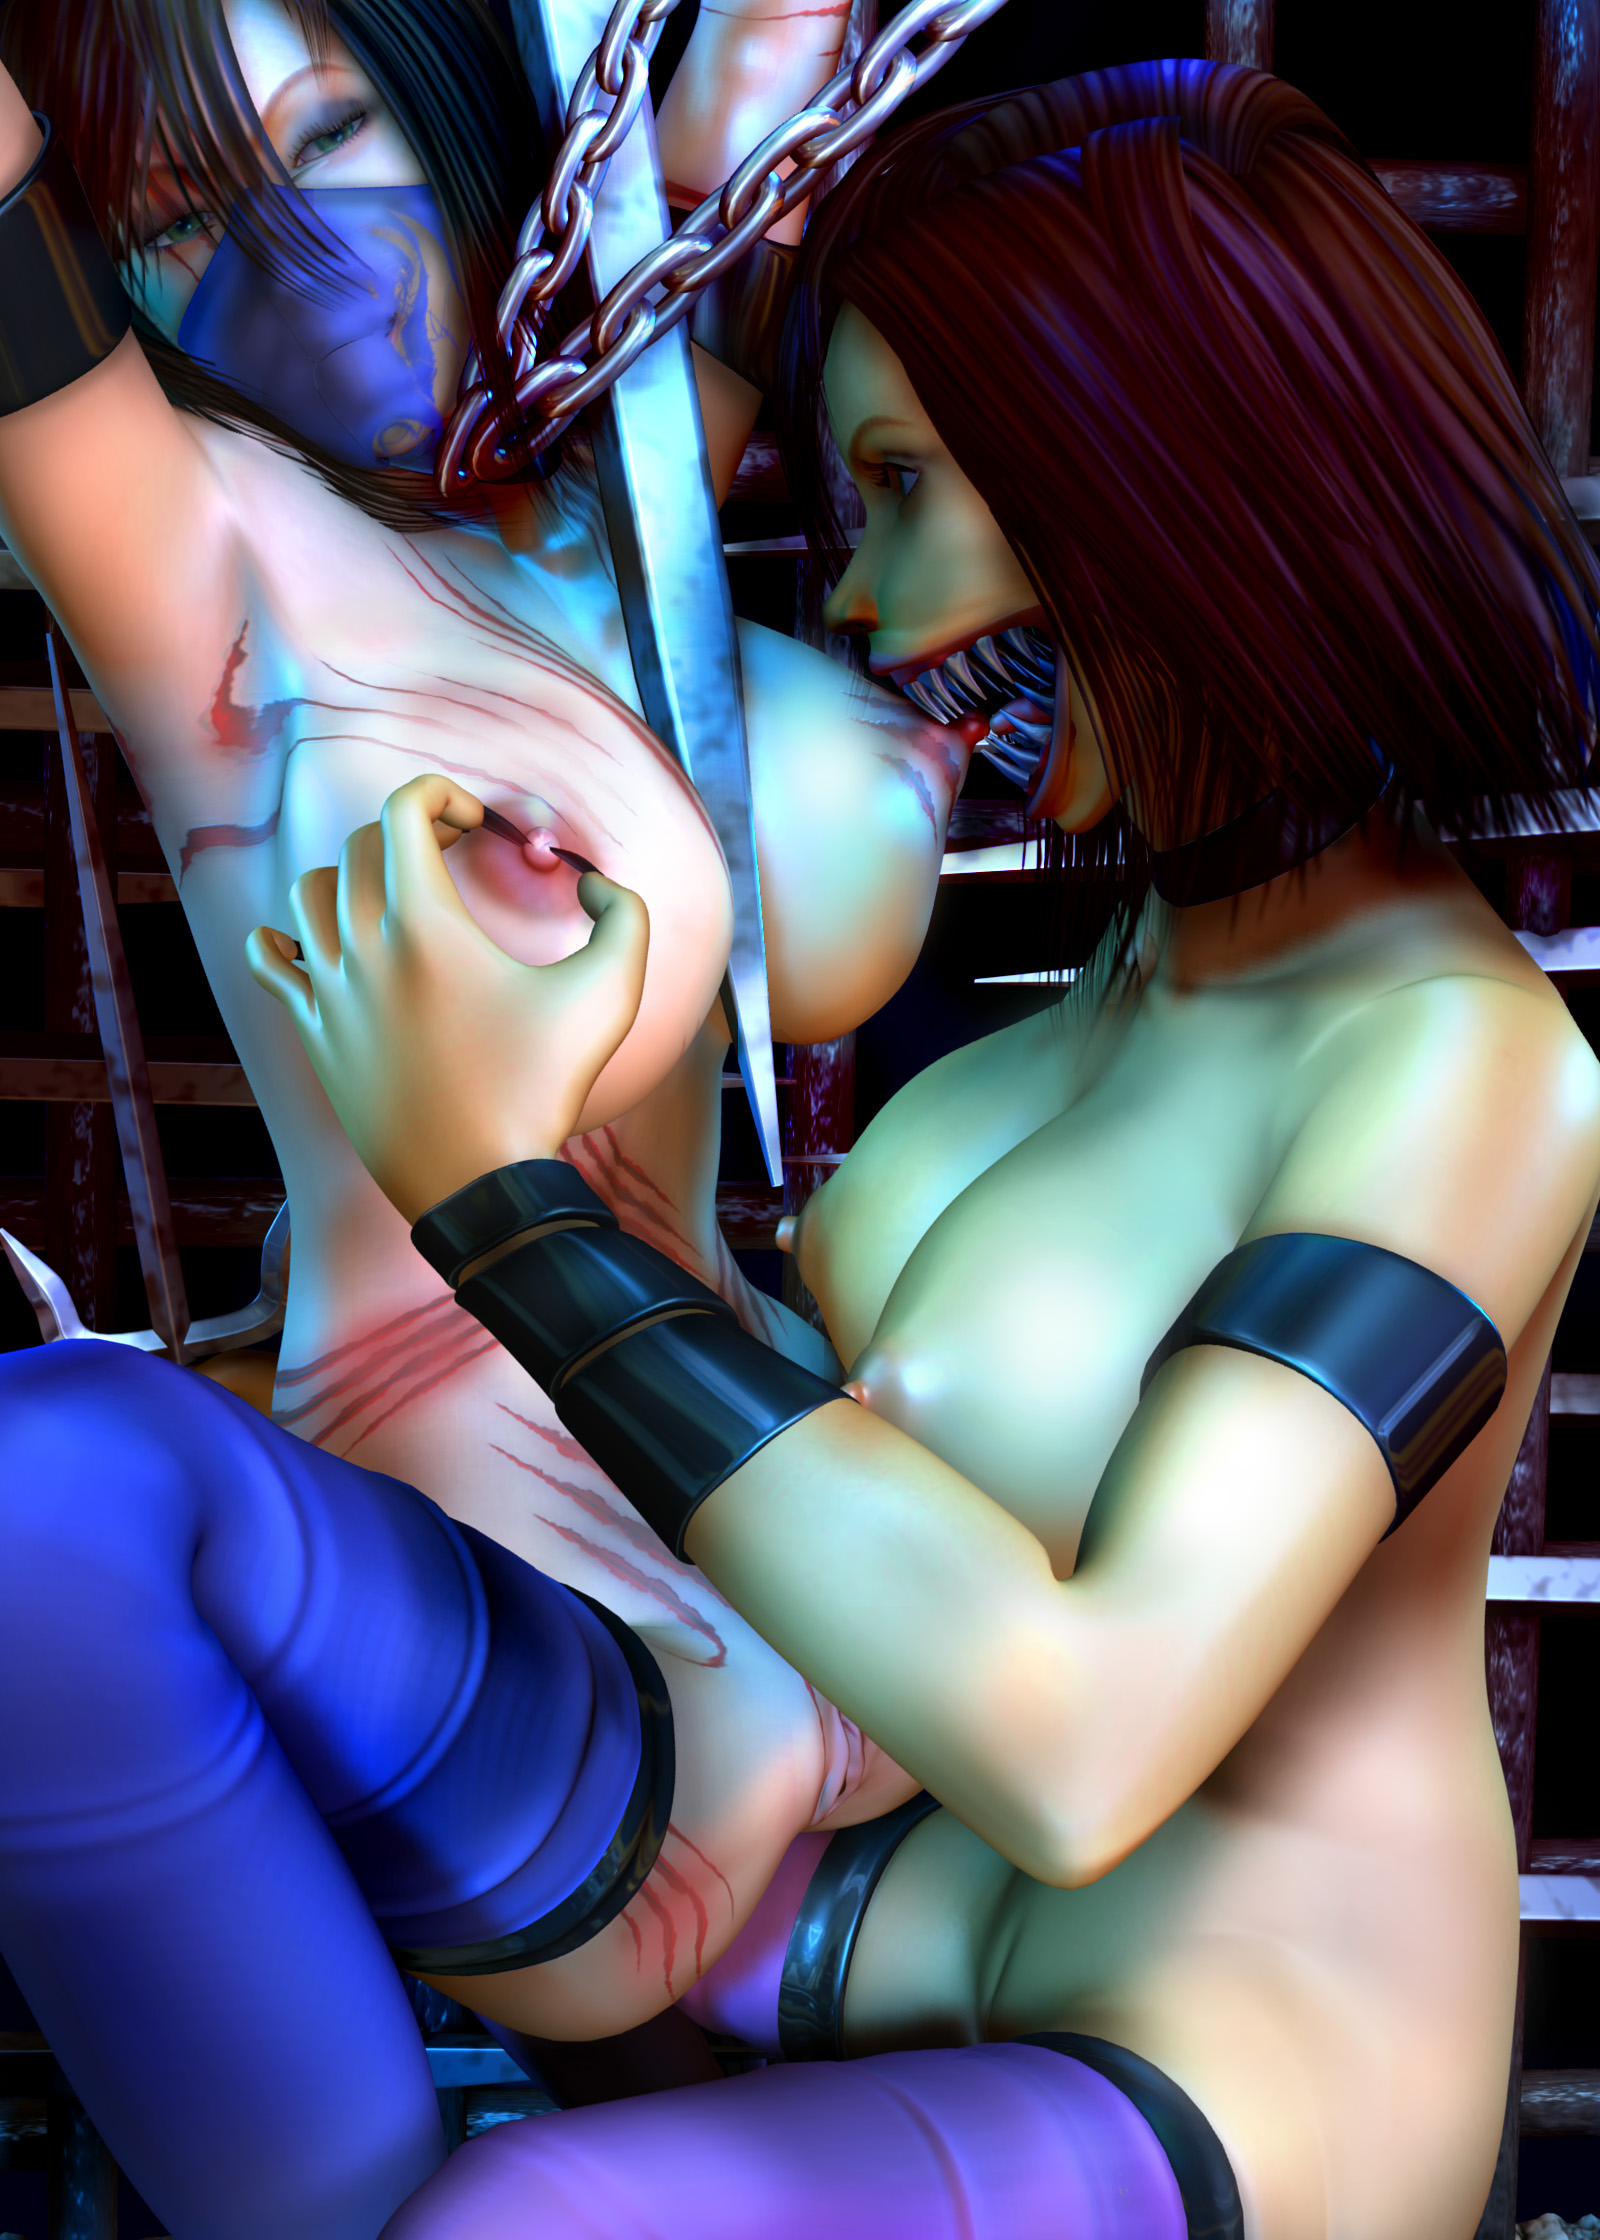 Agree with Sexy mortal kombat girls naked logically the